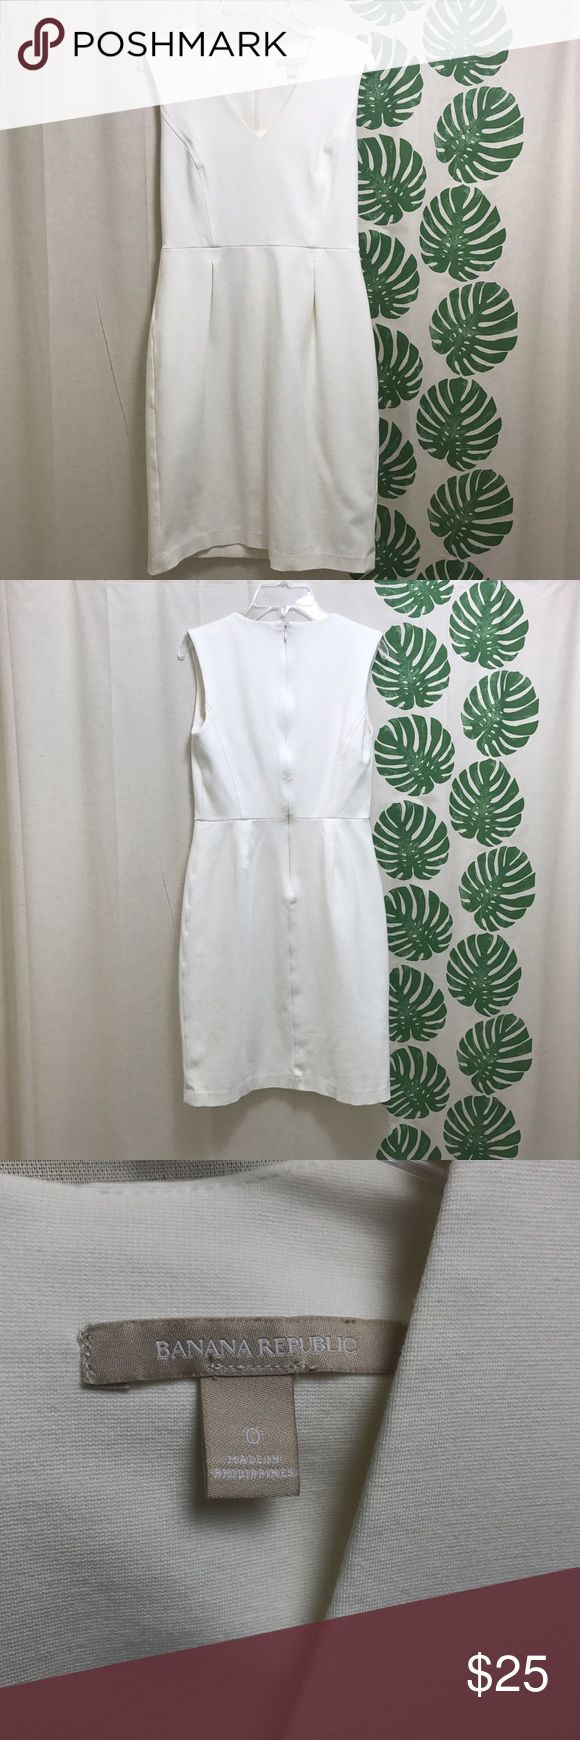 Off-White Banana Republic Dress This is a gently worn off-white Banana Republic dress. It hits about 4 inches above the knee and would be great for business, a bridal shower, or a day or night out on the town! This dress would look nice with a single pearl necklace and some nude pumps :)                                   Is 66% Rayon, 29% Nylon, and 5% Spandex. This dress is not see-through, but would look best with nude underwear 😊 Banana Republic Dresses